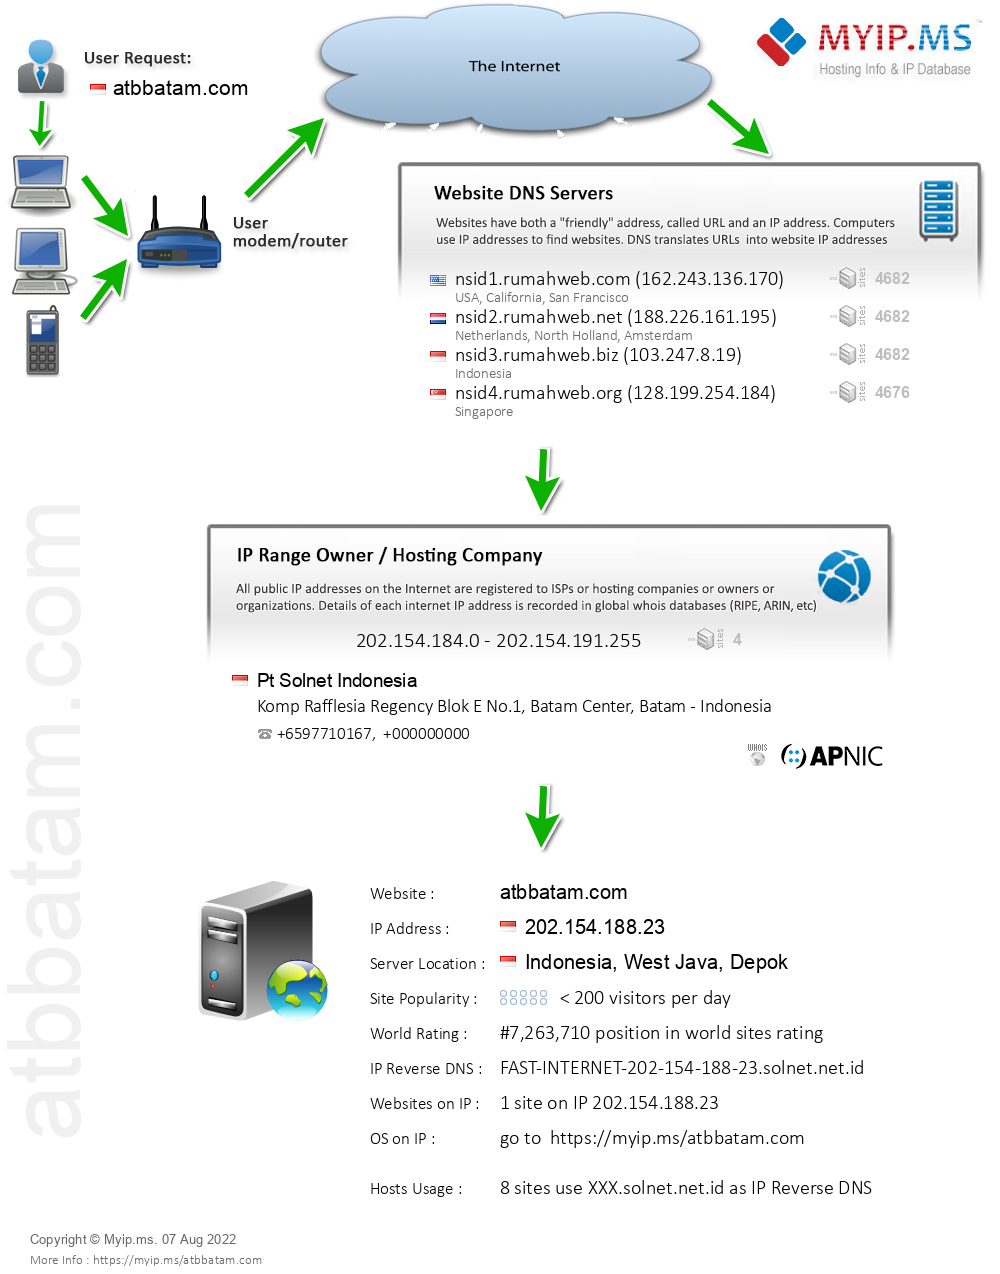 Atbbatam.com - Website Hosting Visual IP Diagram